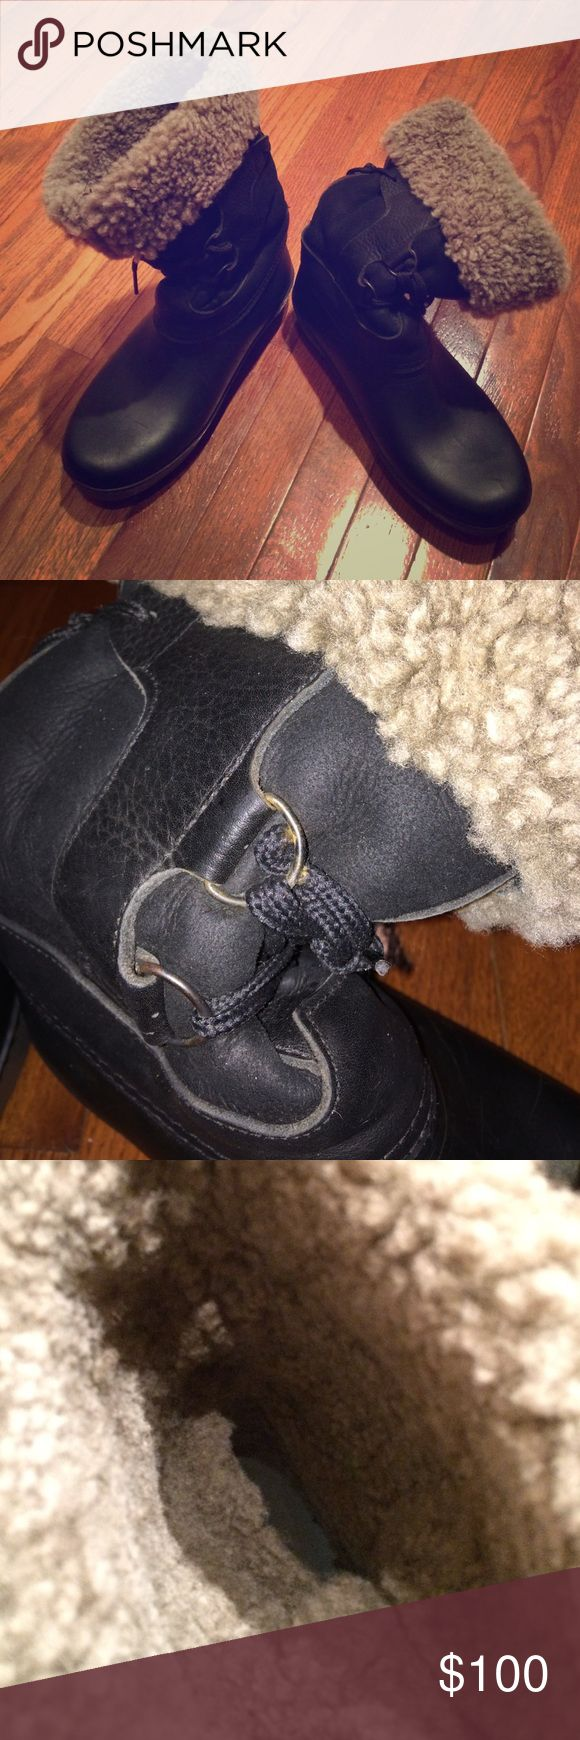 LL Bean Winter Boots Waterproof, shearling lined, leather upper, lace closure, slip on winter LL Bean brand new boots!!! Wrong size for me, unfortunately. These will make a beautiful, comfy and warm pair of boots that you can pair with your favorite winter fleece lined skinny jeans. Open to questions and offers. 🌺🐴👢👖NWOT L.L. Bean Shoes Winter & Rain Boots